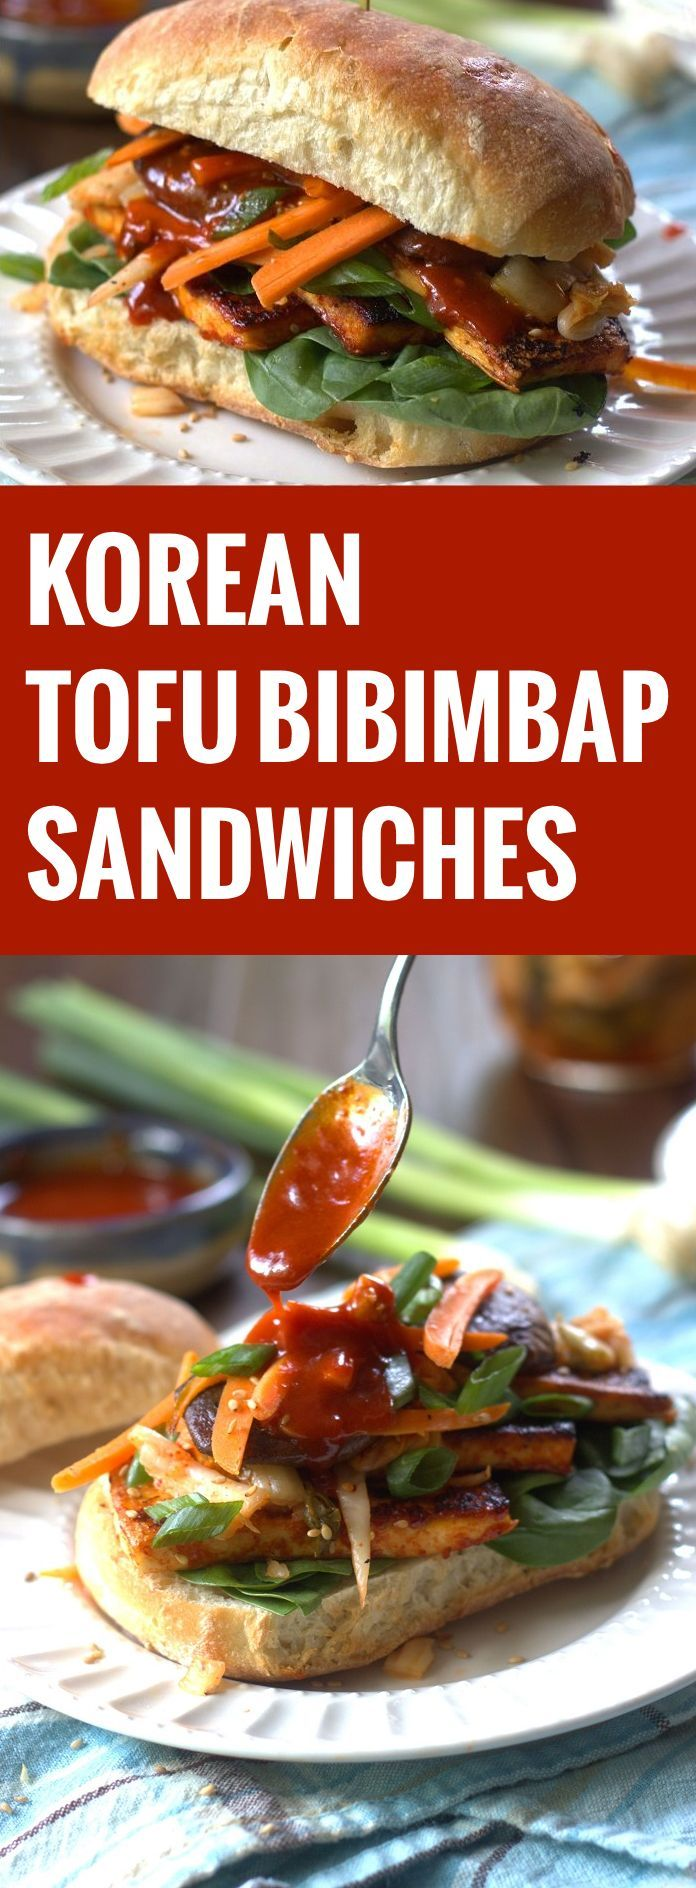 7078 best peaceful plate vegan food images on pinterest vegan korean tofu bibimbap sandwiches vegan vegan korean foodkorean food recipesvegan forumfinder Images